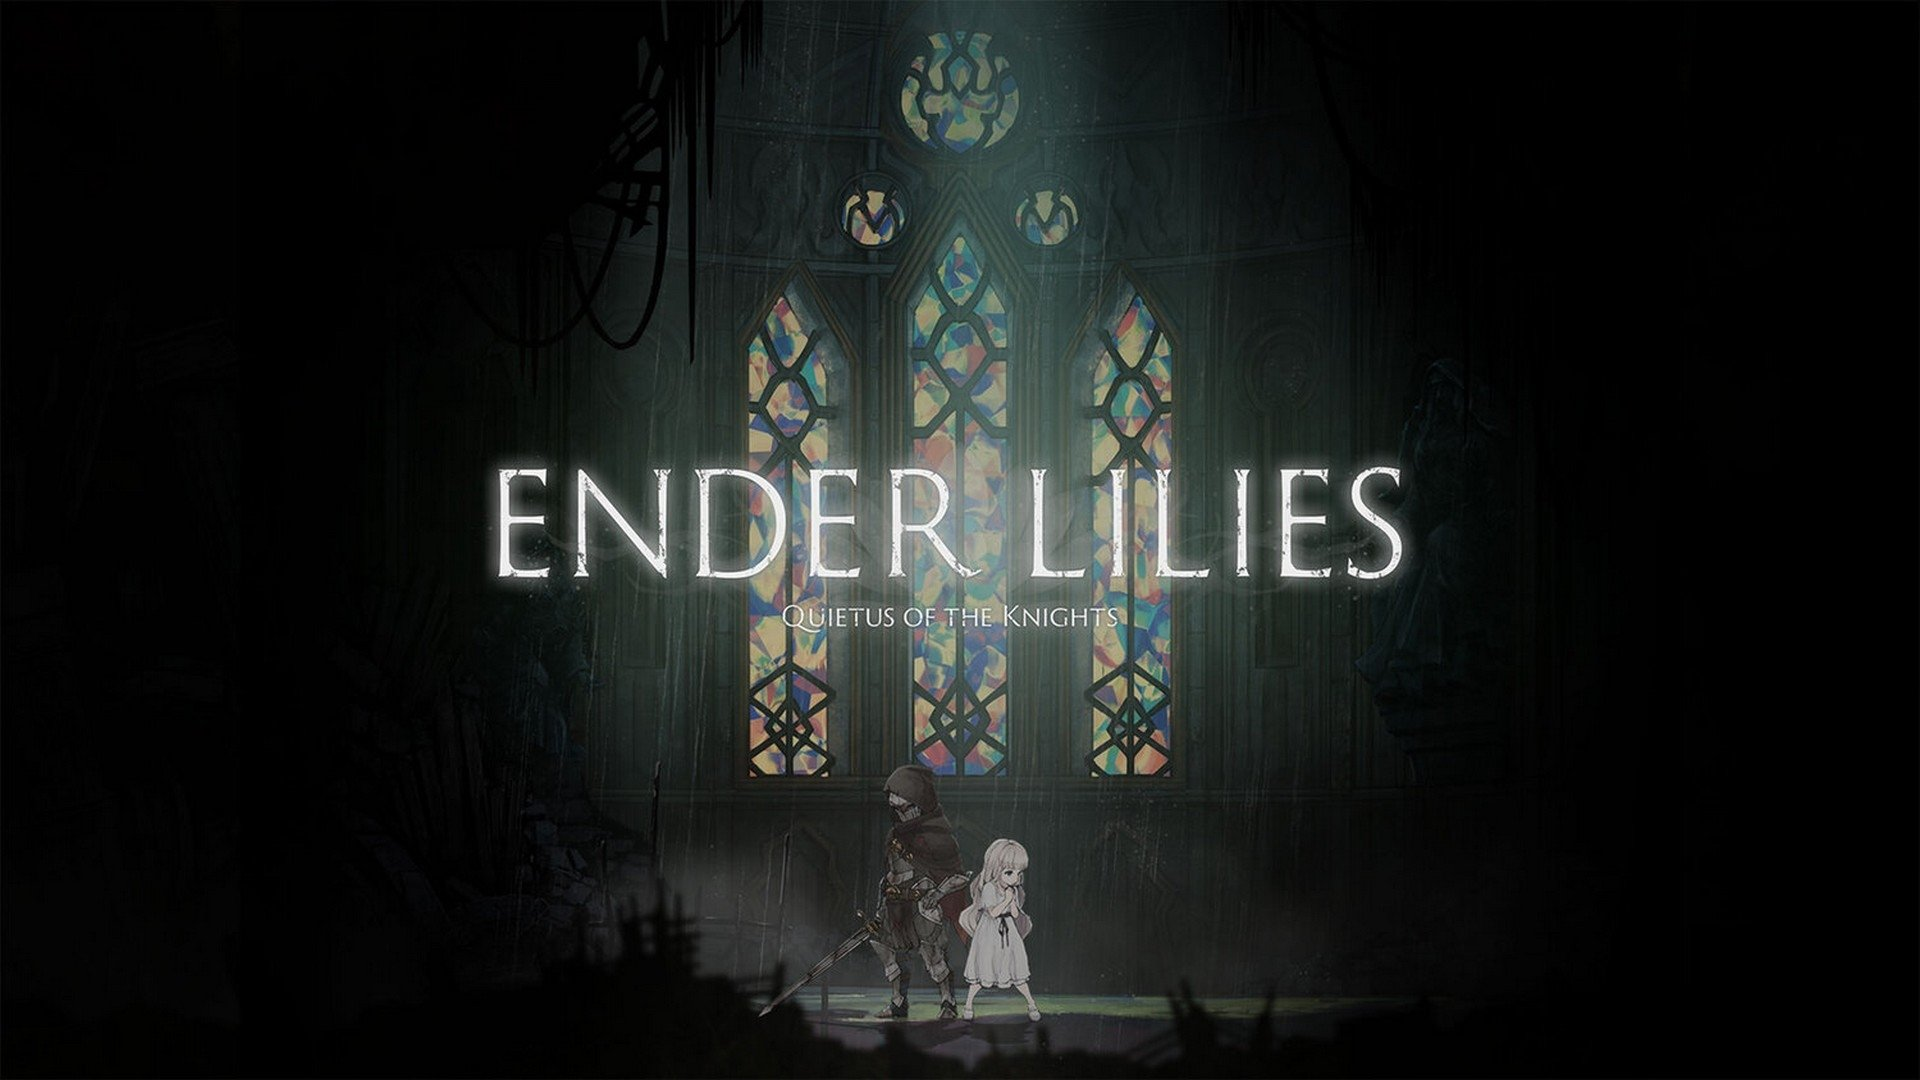 Ender Lilies: Quietus of the Knights Launches On Steam And Consoles In Winter 2020